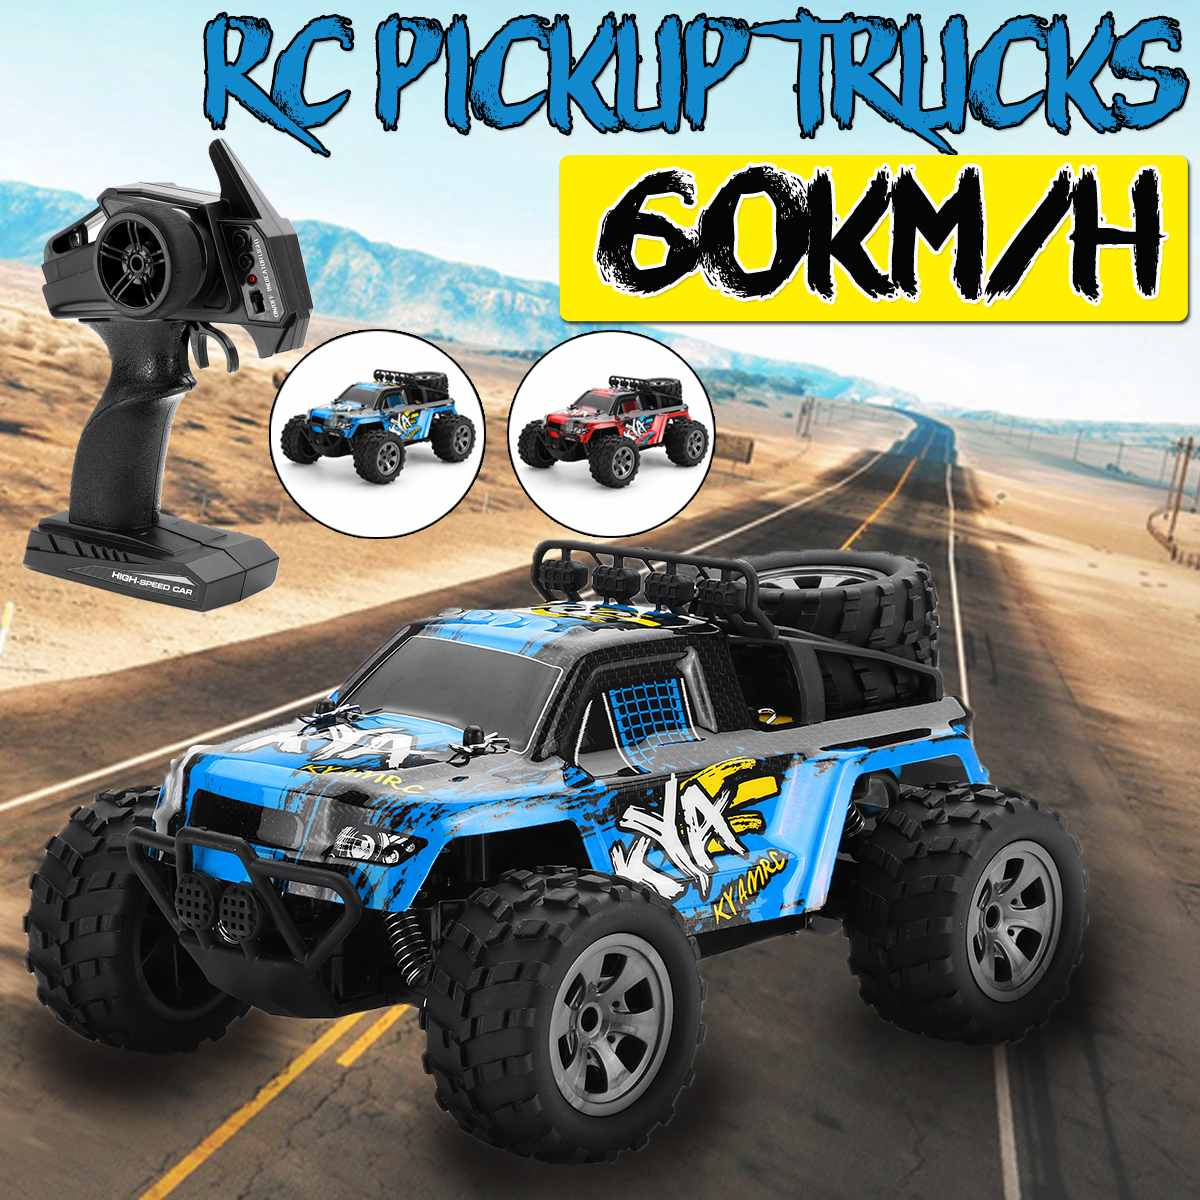 2.4G RC 1:18 <font><b>Car</b></font> RC 4WD <font><b>Car</b></font> High Speed Drive Drift <font><b>Racing</b></font> USB Charging Remote Control Vehicle <font><b>Electronic</b></font> Hobby Toys for Children image